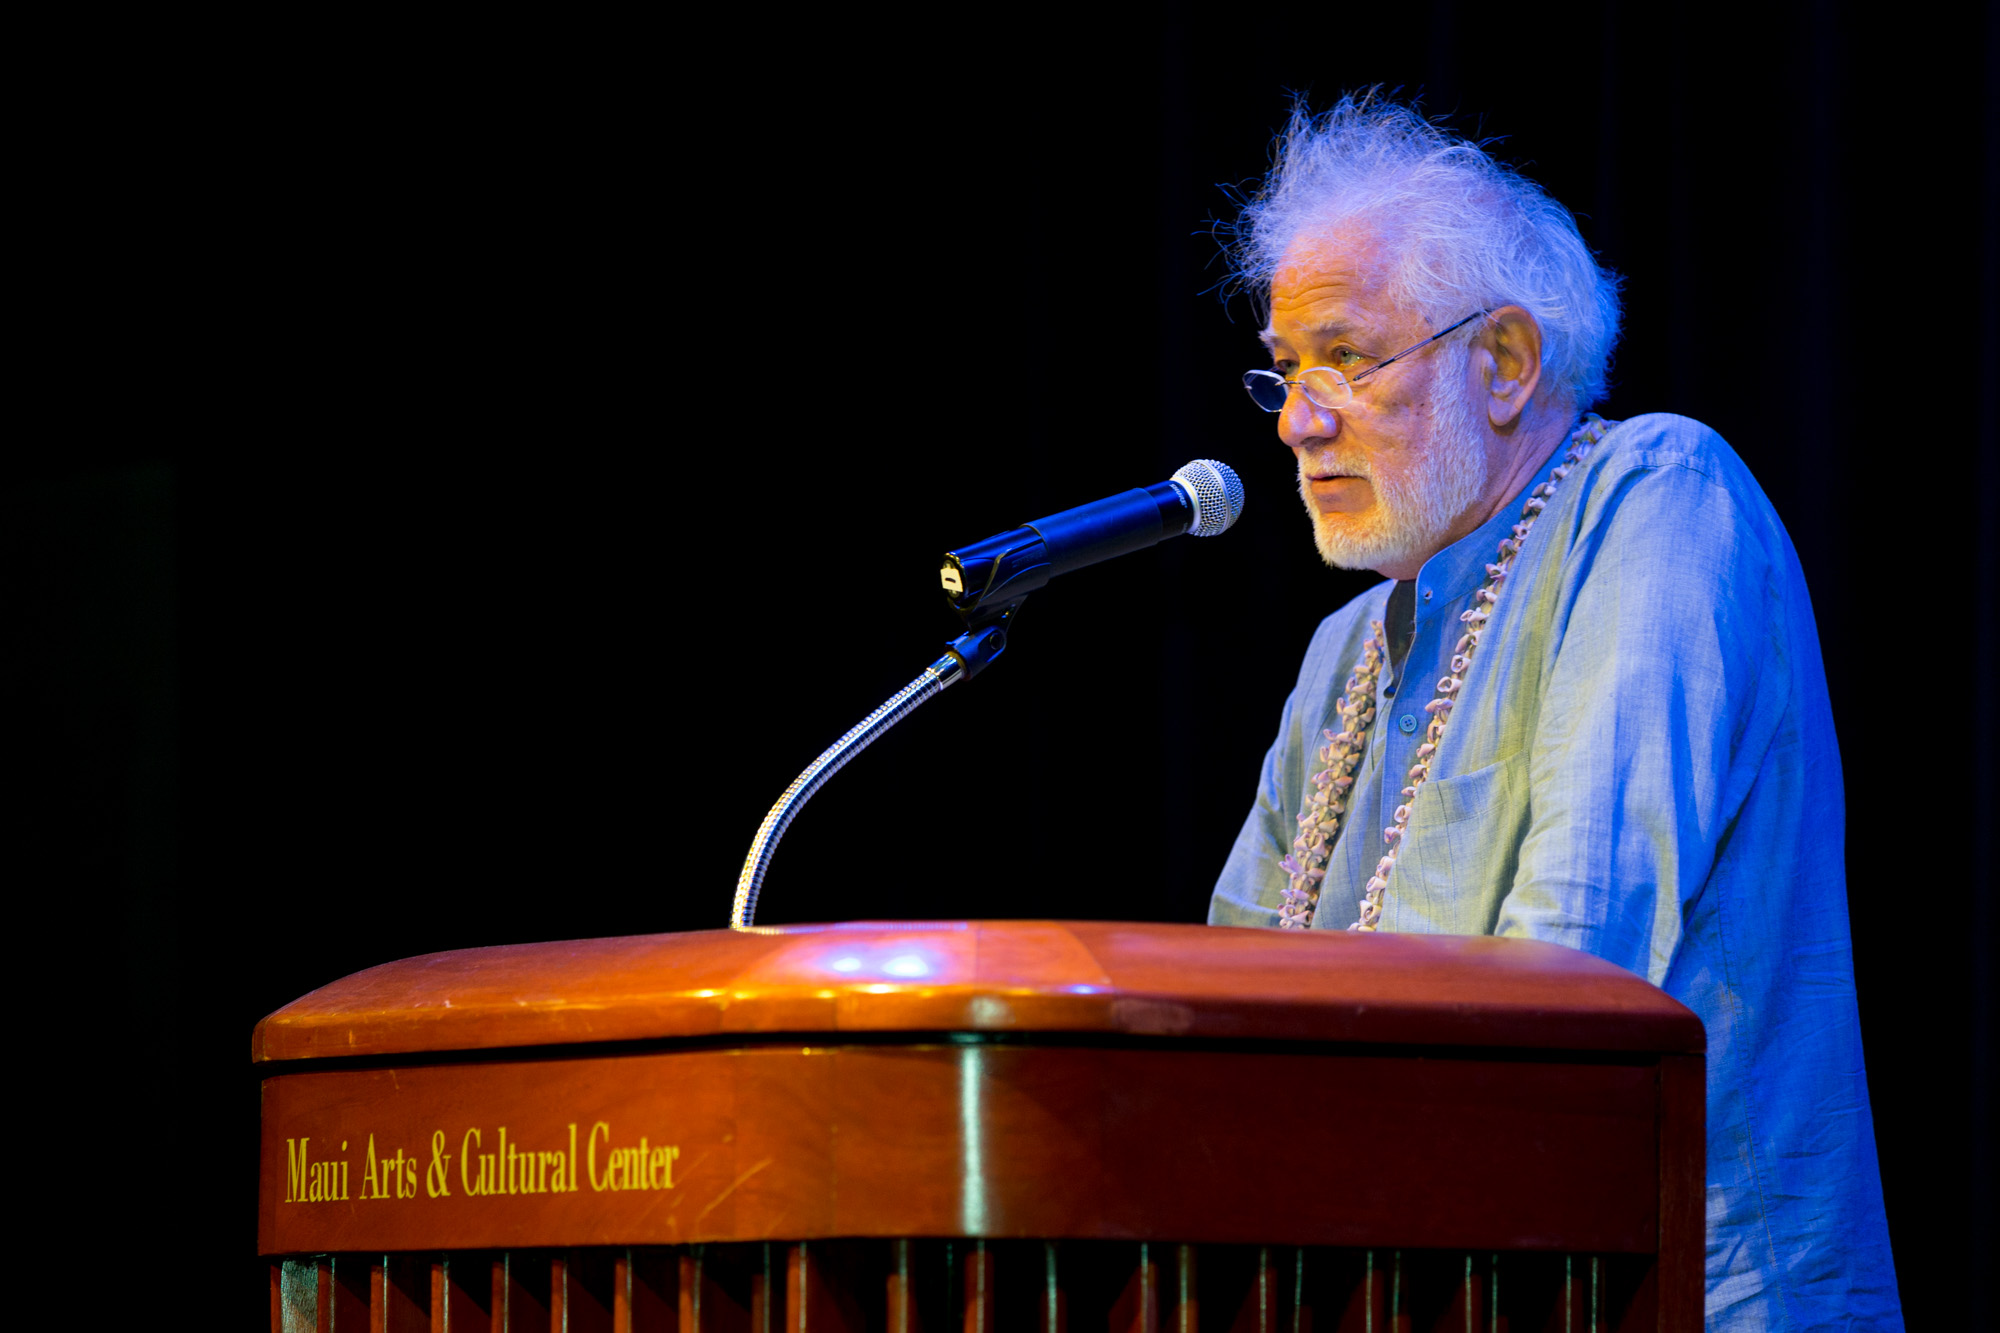 Michael Ondaatje reading from his works